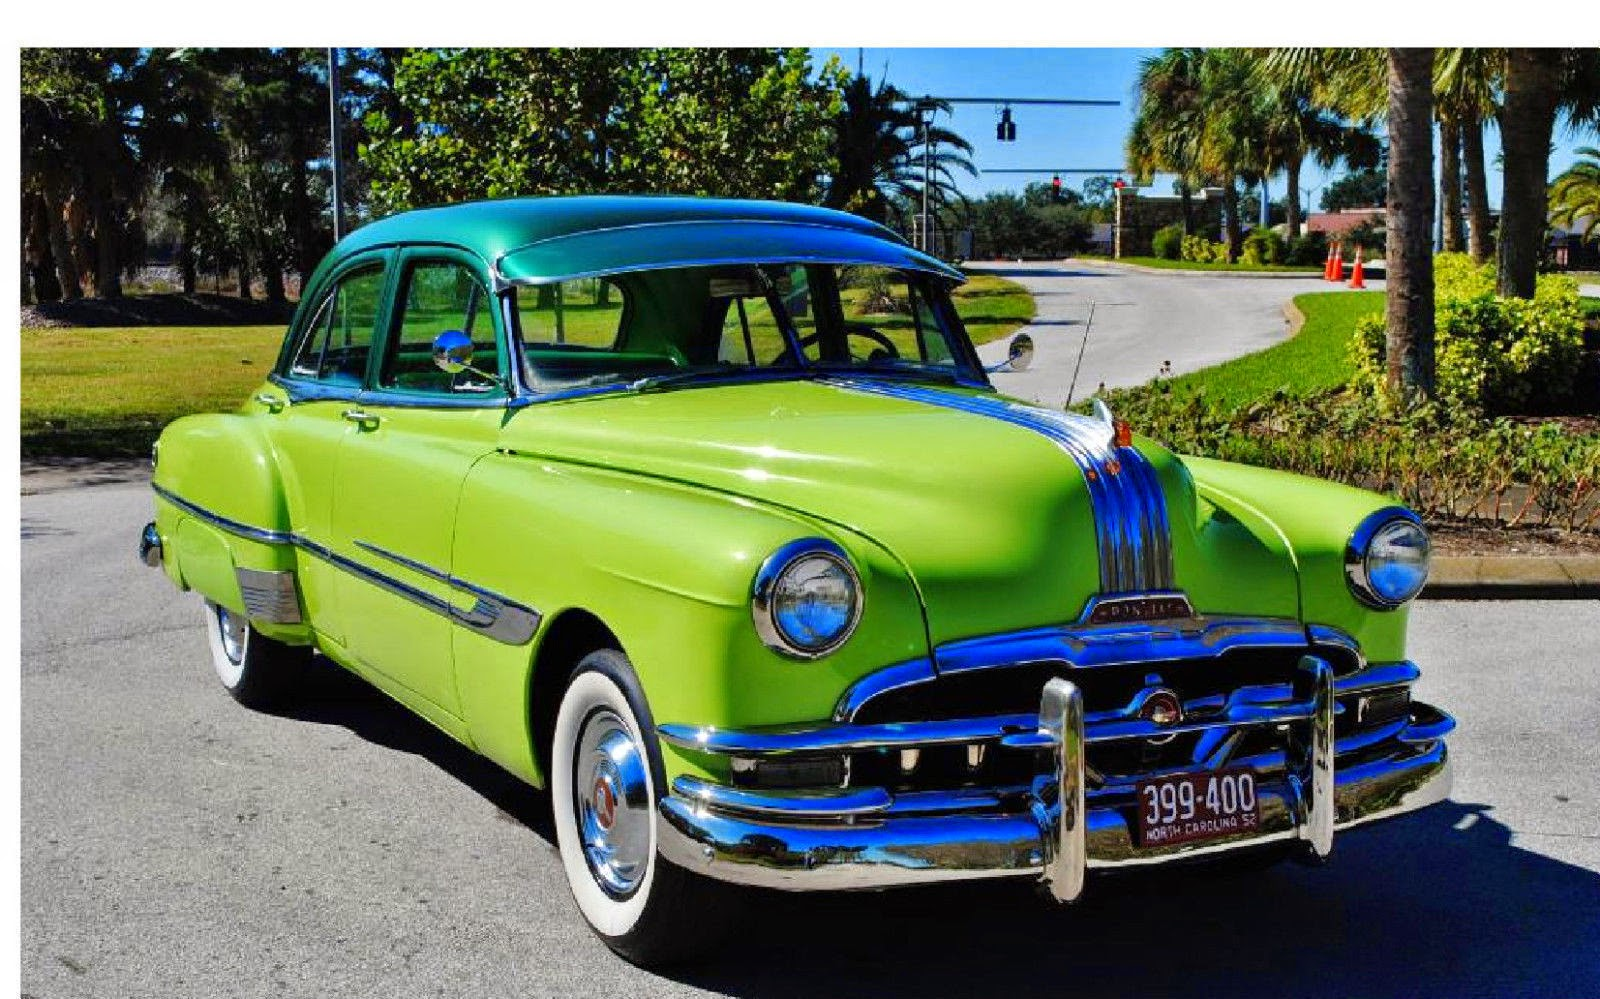 All American Classic Cars: 1952 Pontiac Chieftain DeLuxe 4